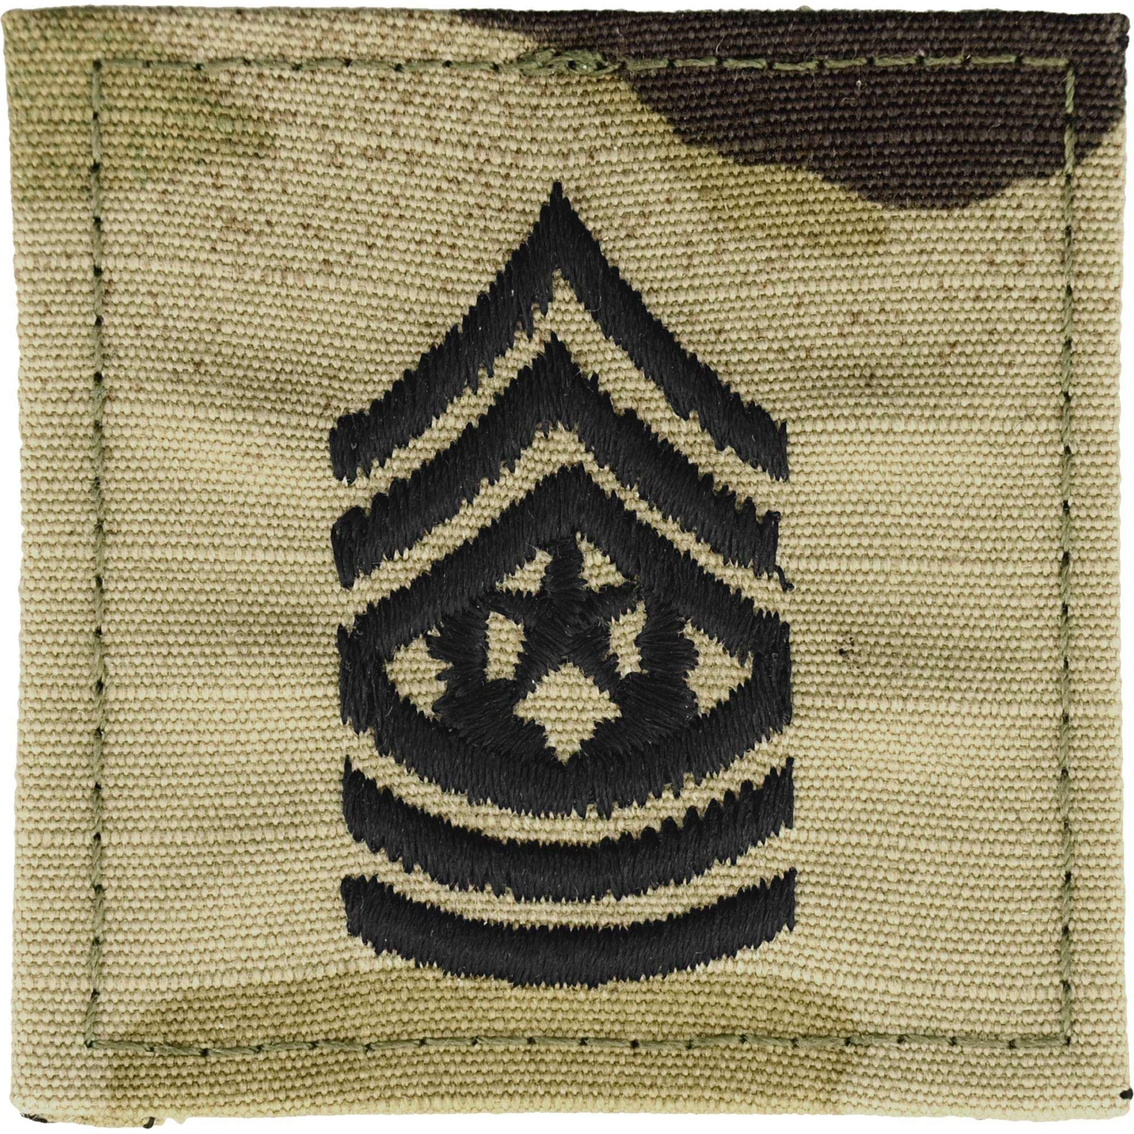 Army Rank Command Sergeant Major (csm) Velcro (ocp), 2 Qty Per Pkg.